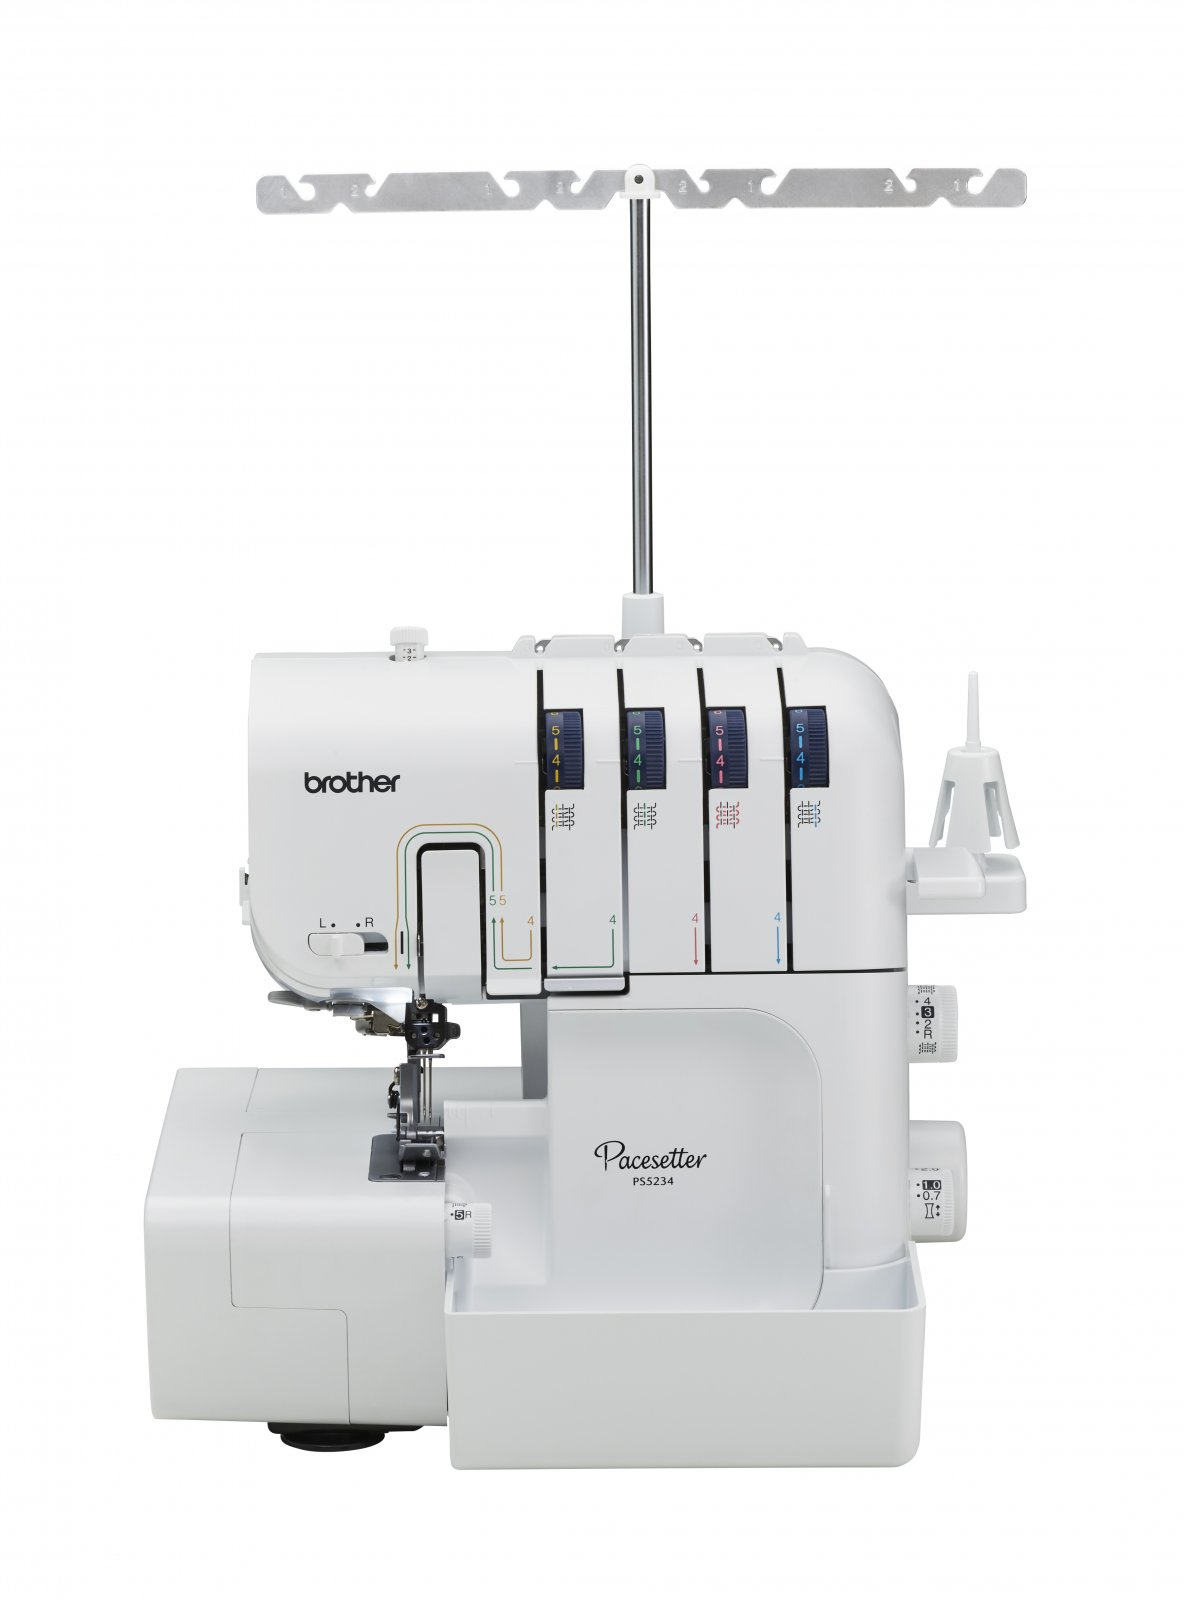 Brother PS5234 serger